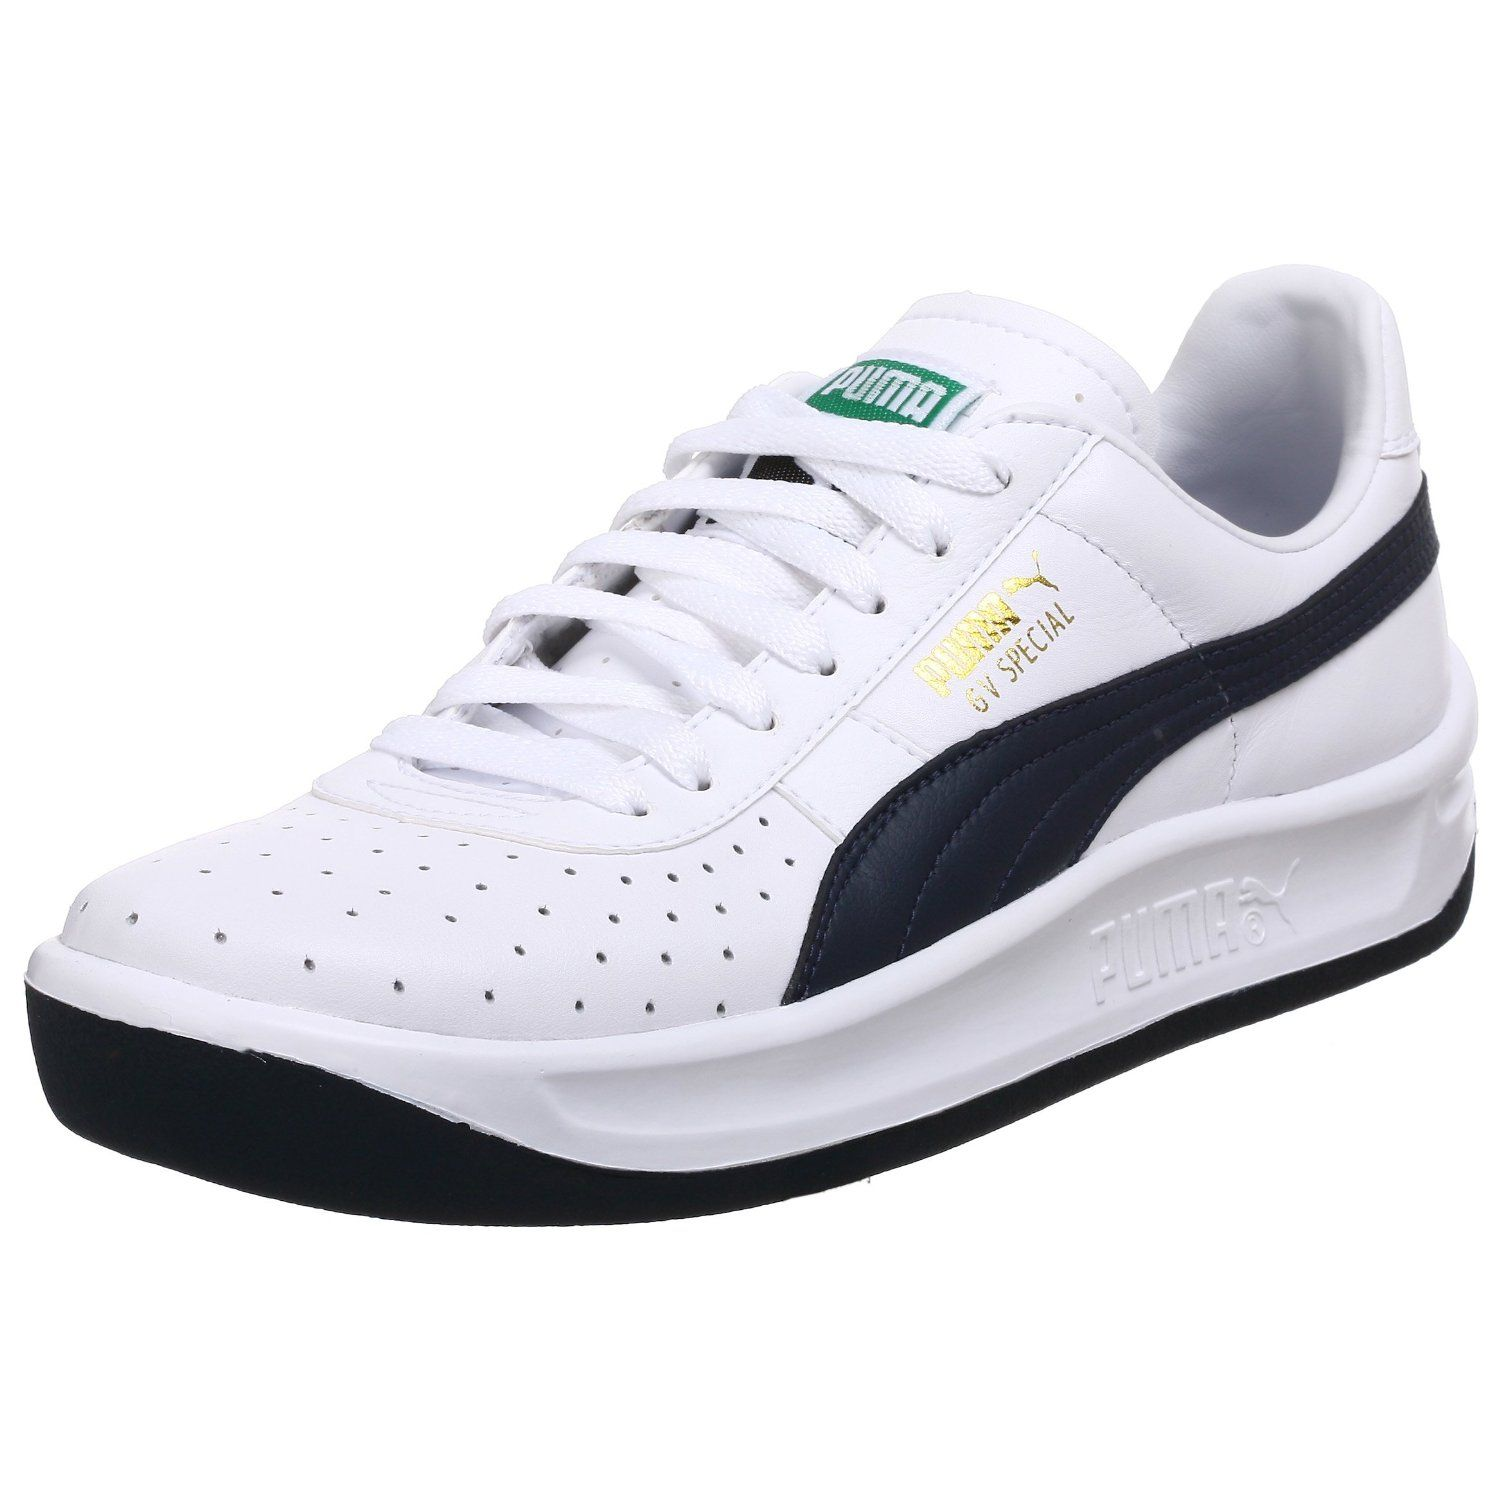 sports shoes af565 195ee Amazon.com: PUMA Men's GV Special Sneaker: PUMA: Shoes ...